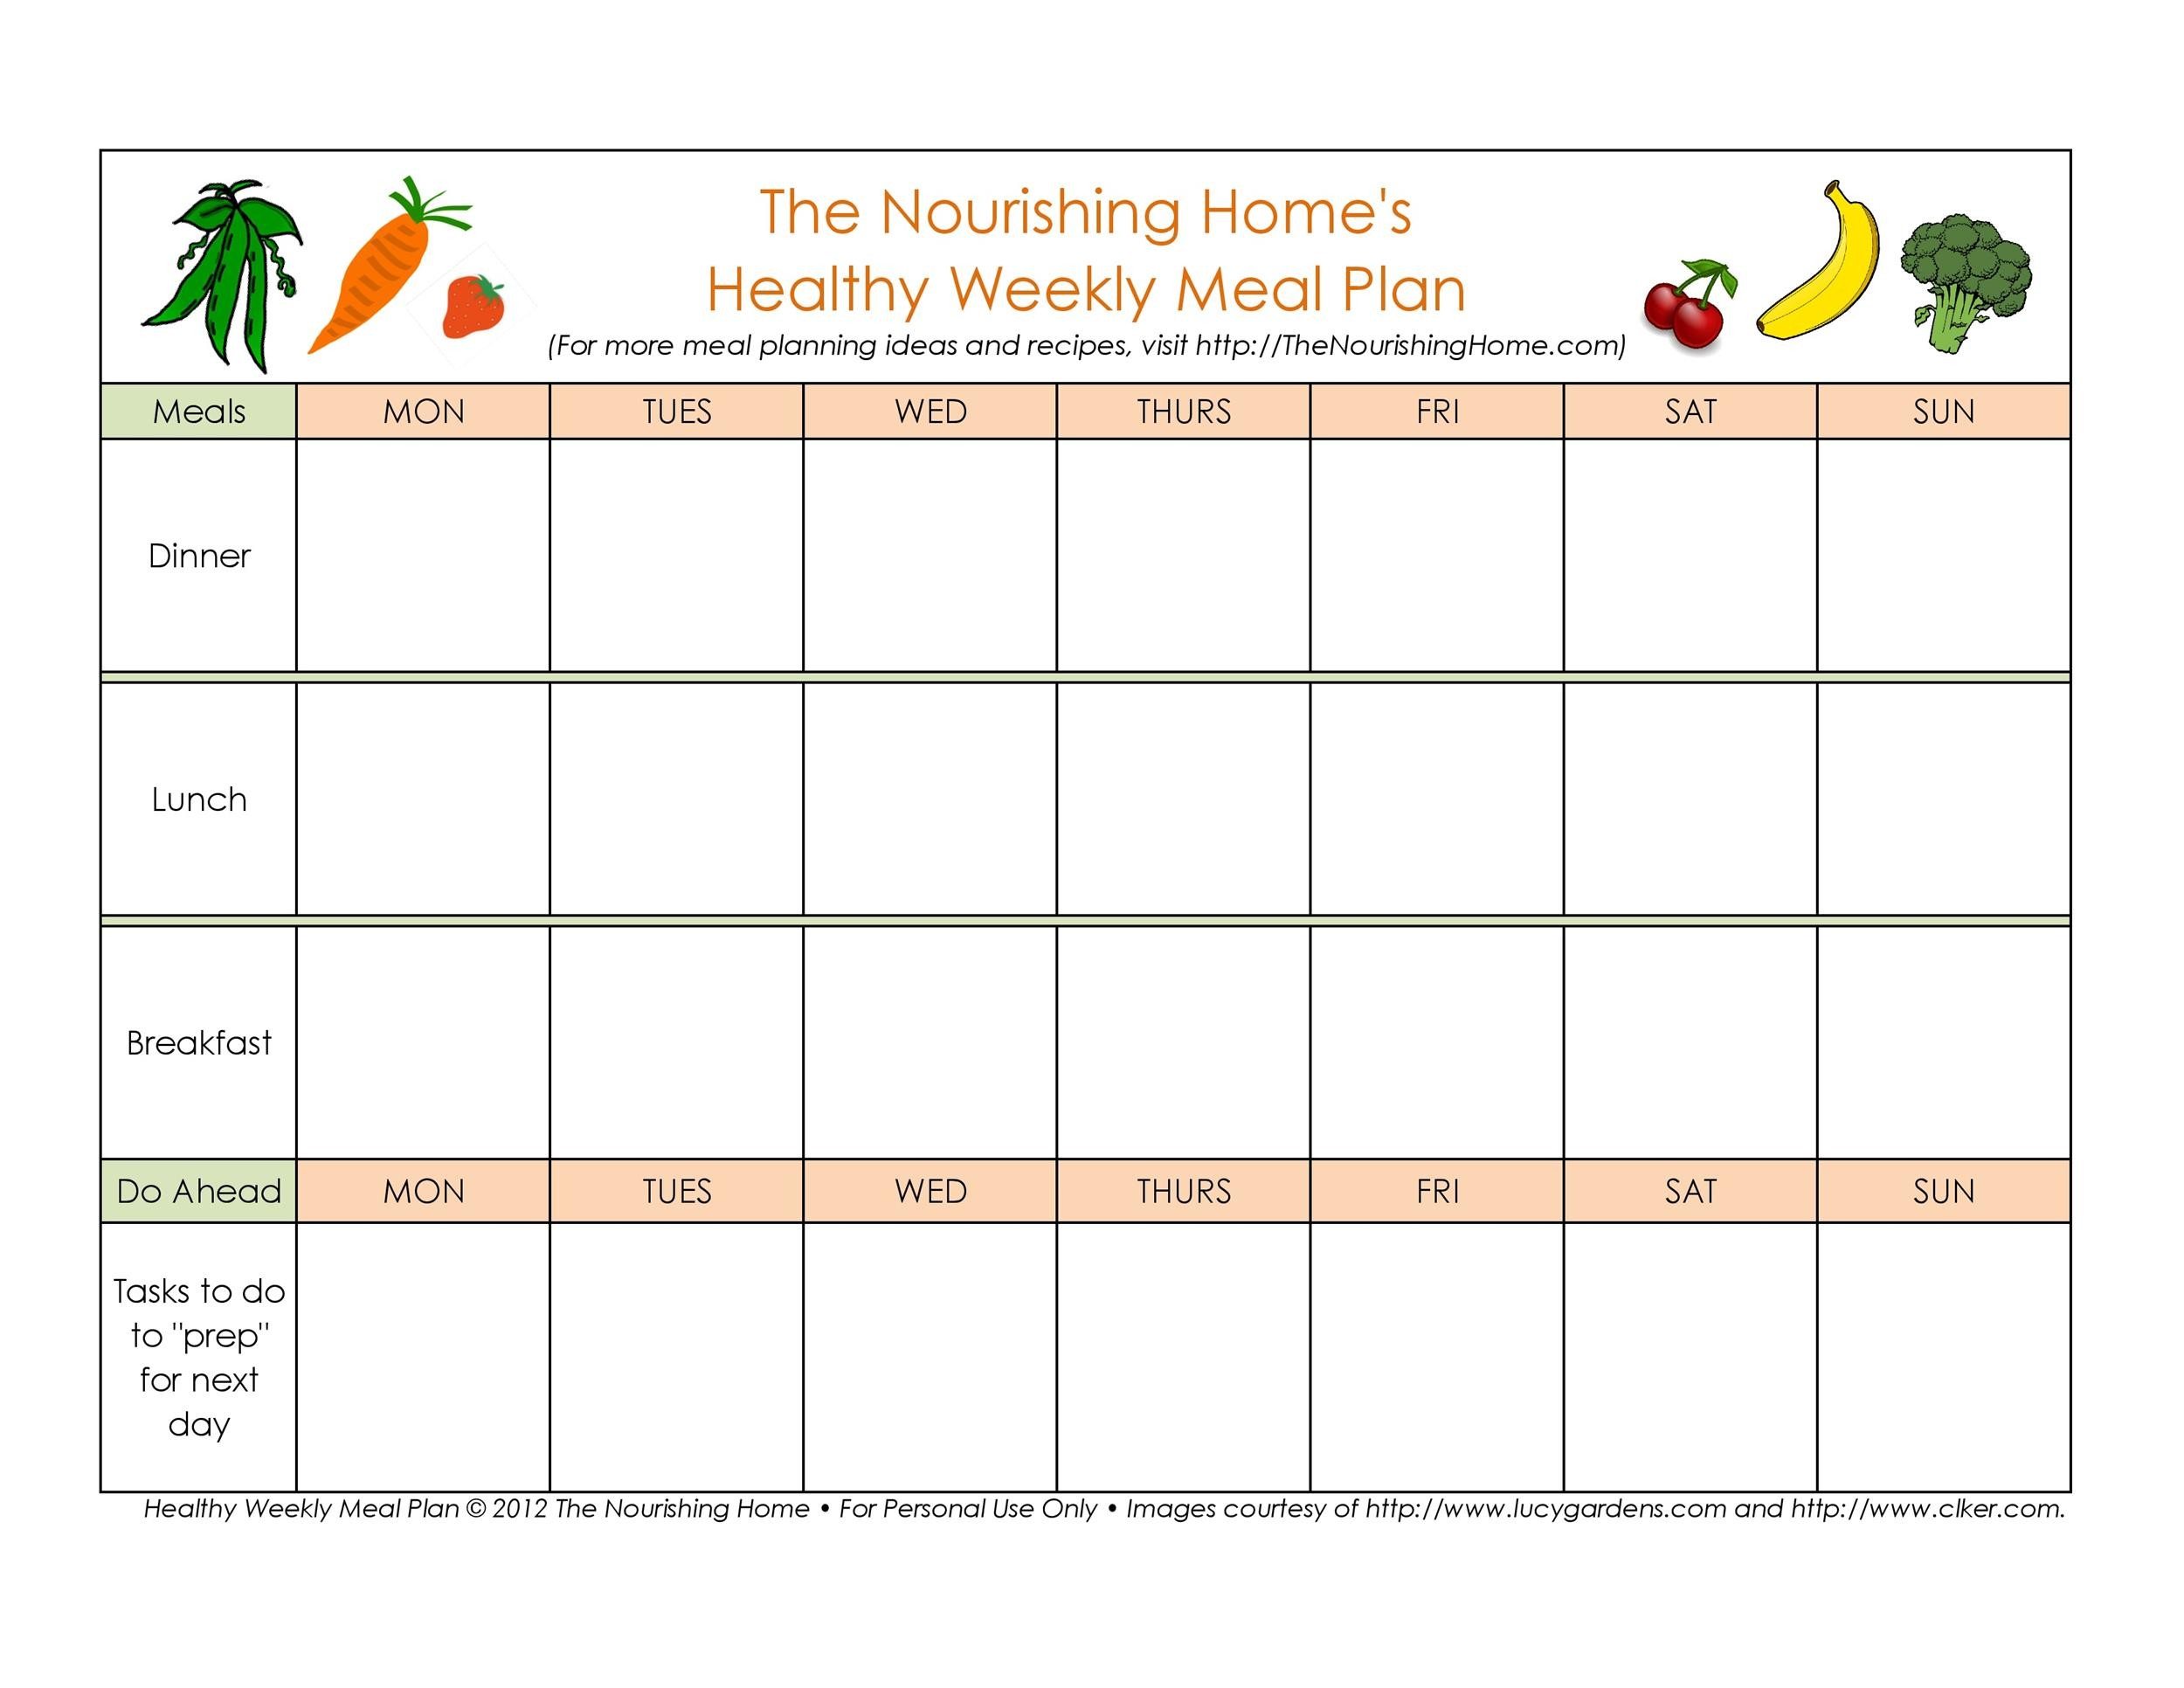 image regarding Weekly Plans Template called 40+ Weekly Supper Building Templates ᐅ Template Lab